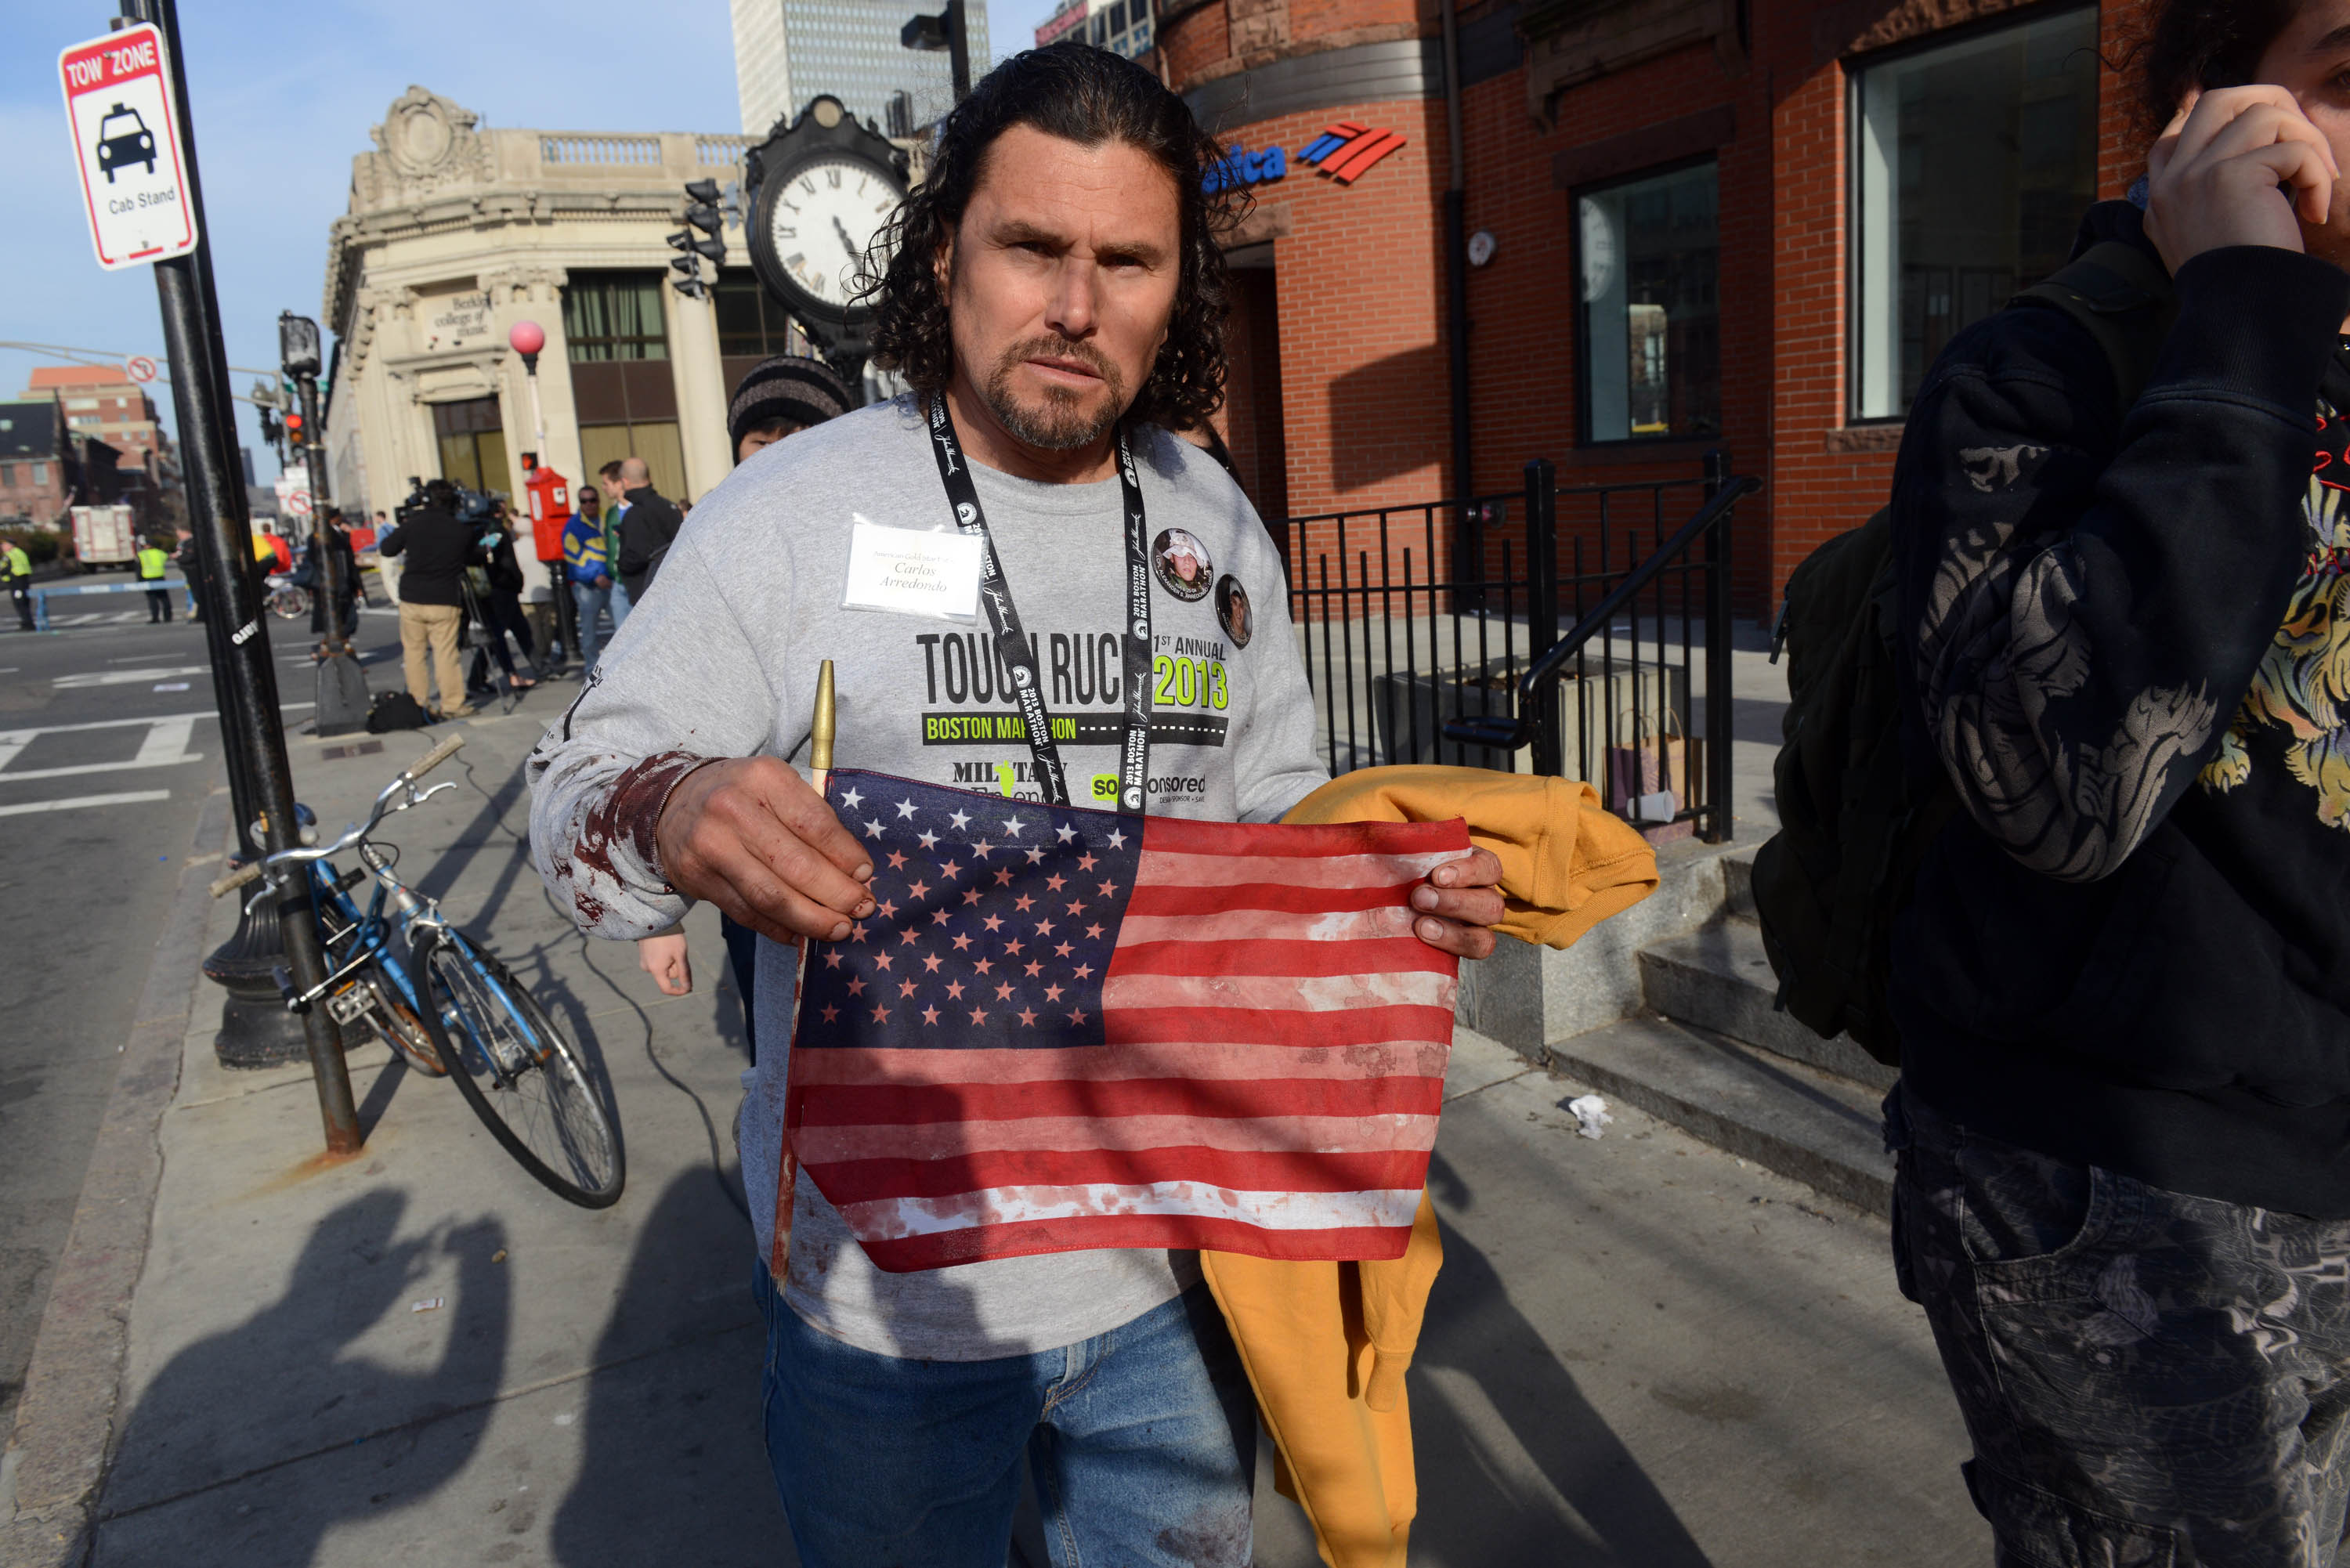 BOSTON, MA - APRIL 15:  Carlos Arredondo, who was at the finish line of the 117th Boston Marathon when two explosives detonated, leaves the scene.  (Photo by Darren McCollester/Getty Images)